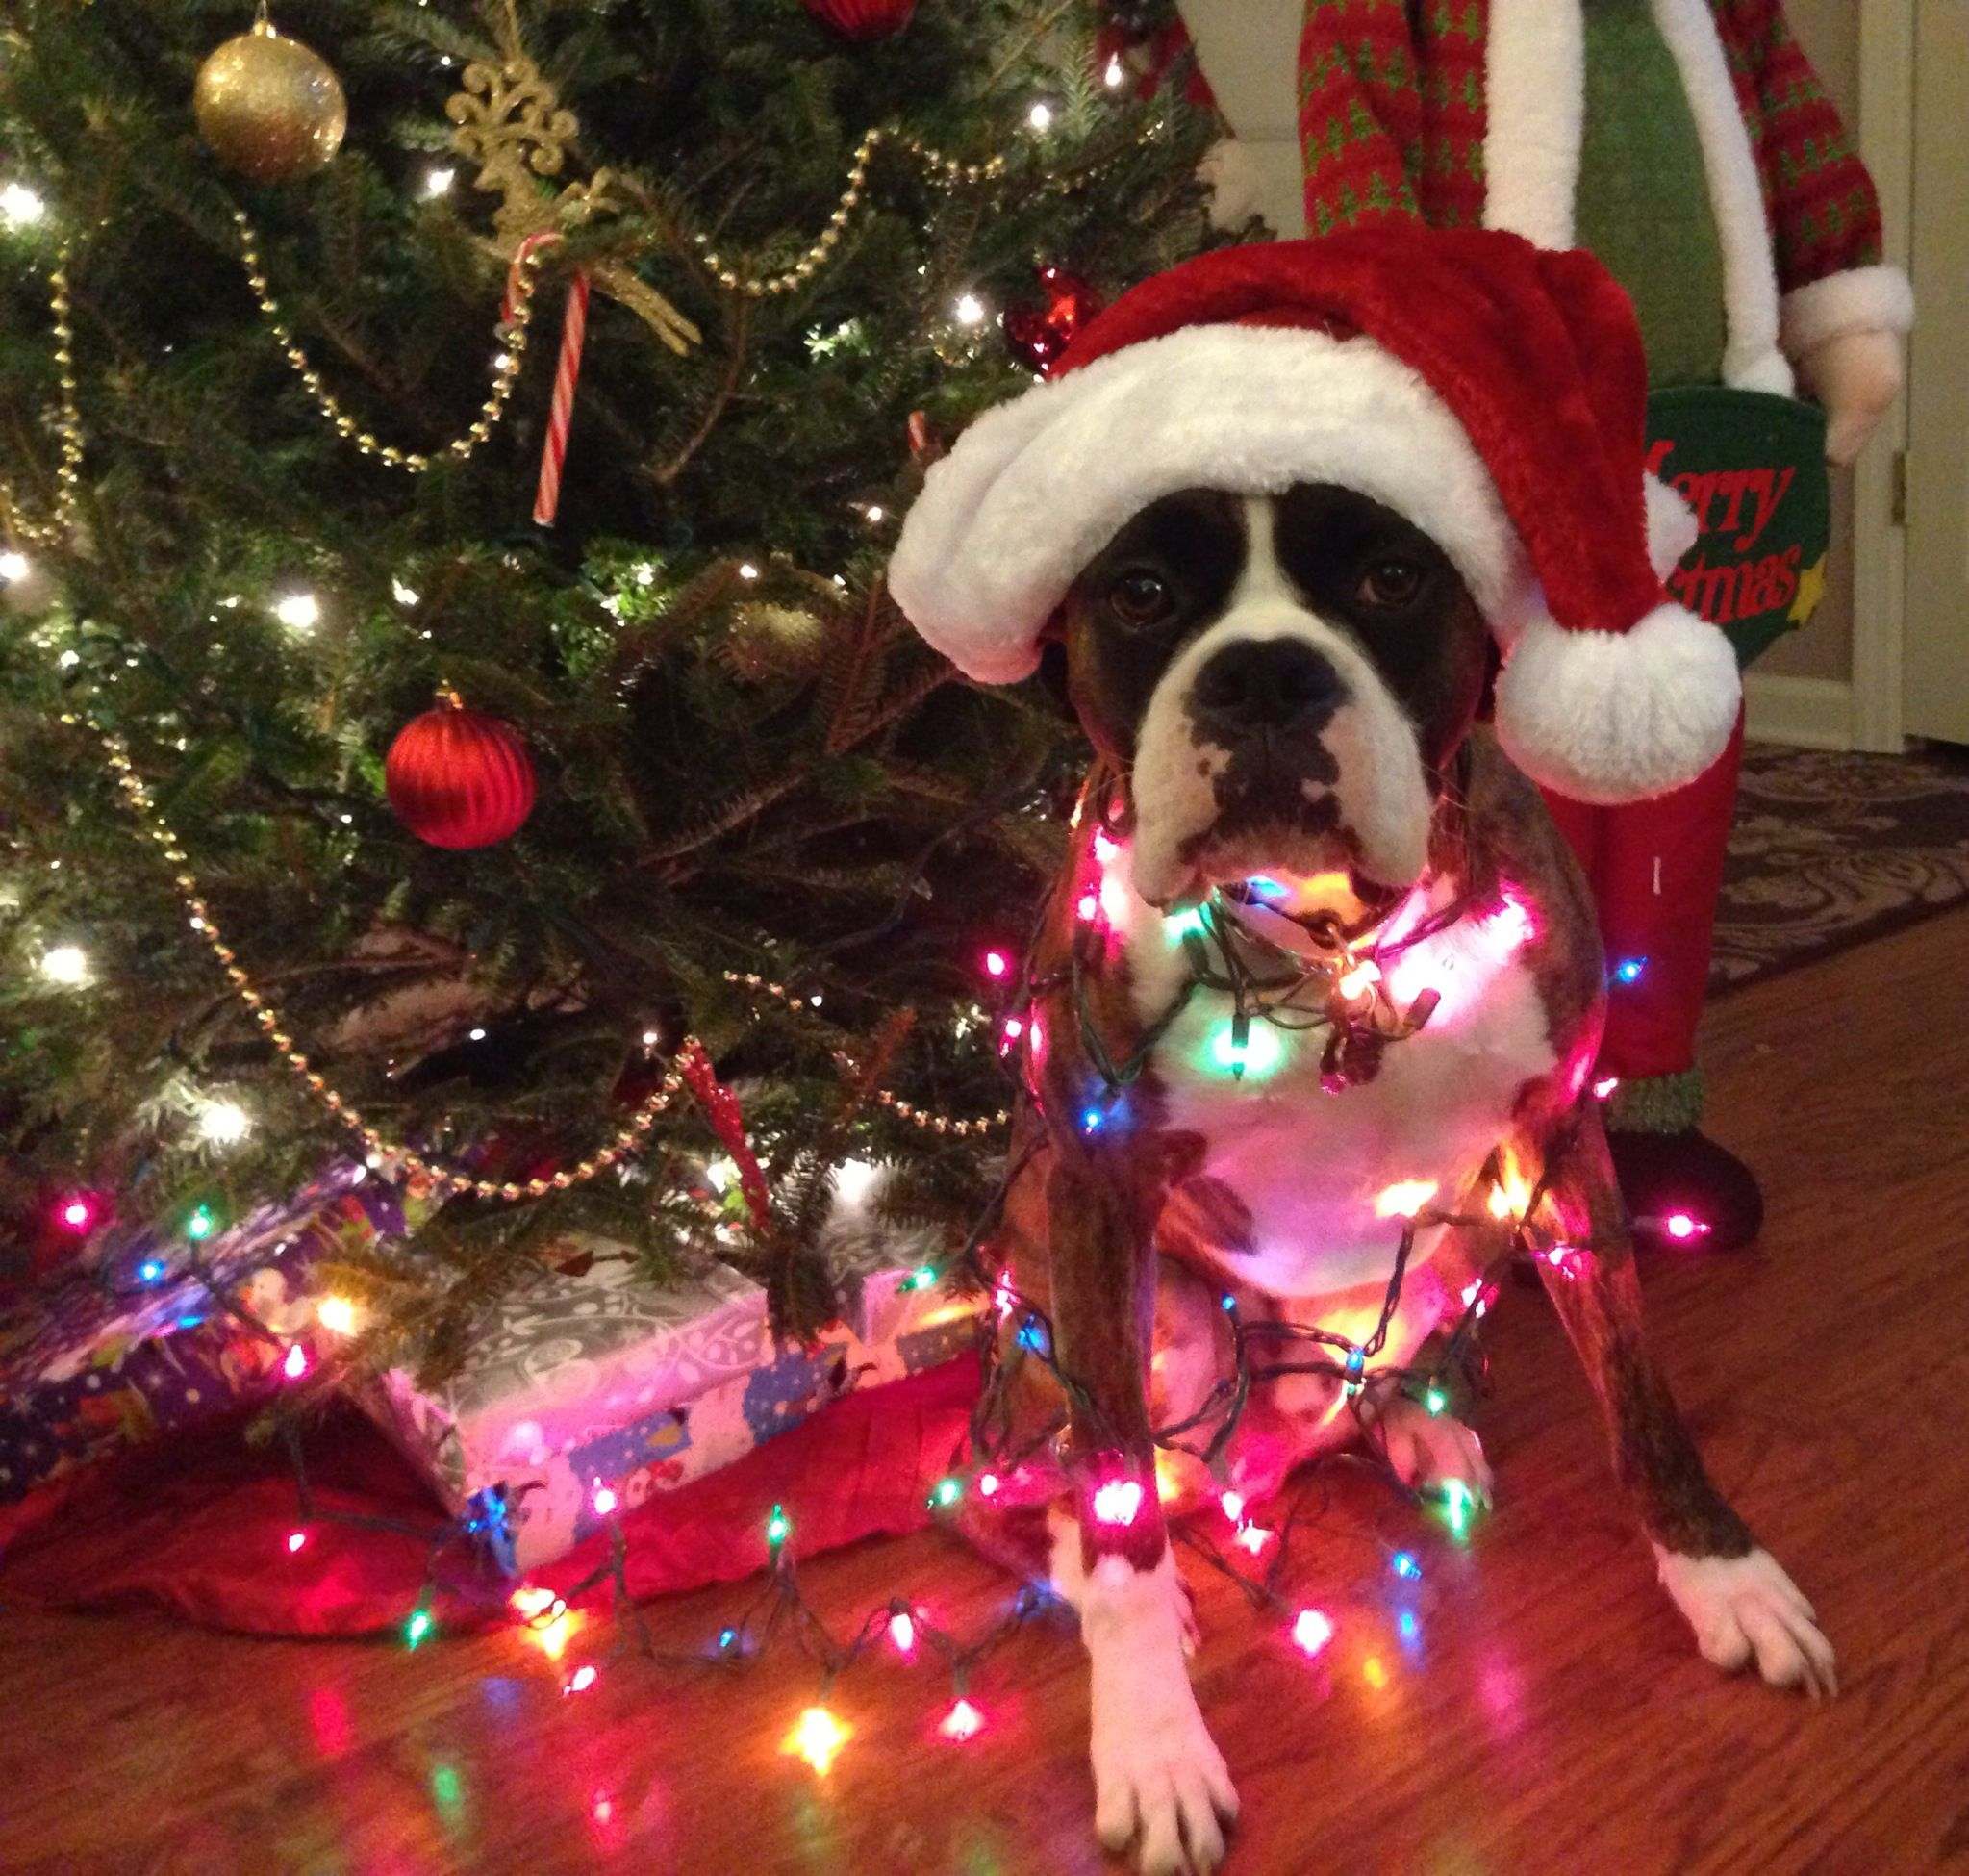 Boxer Energetic And Funny Dog Christmas Pictures Christmas Animals Boxer Dogs